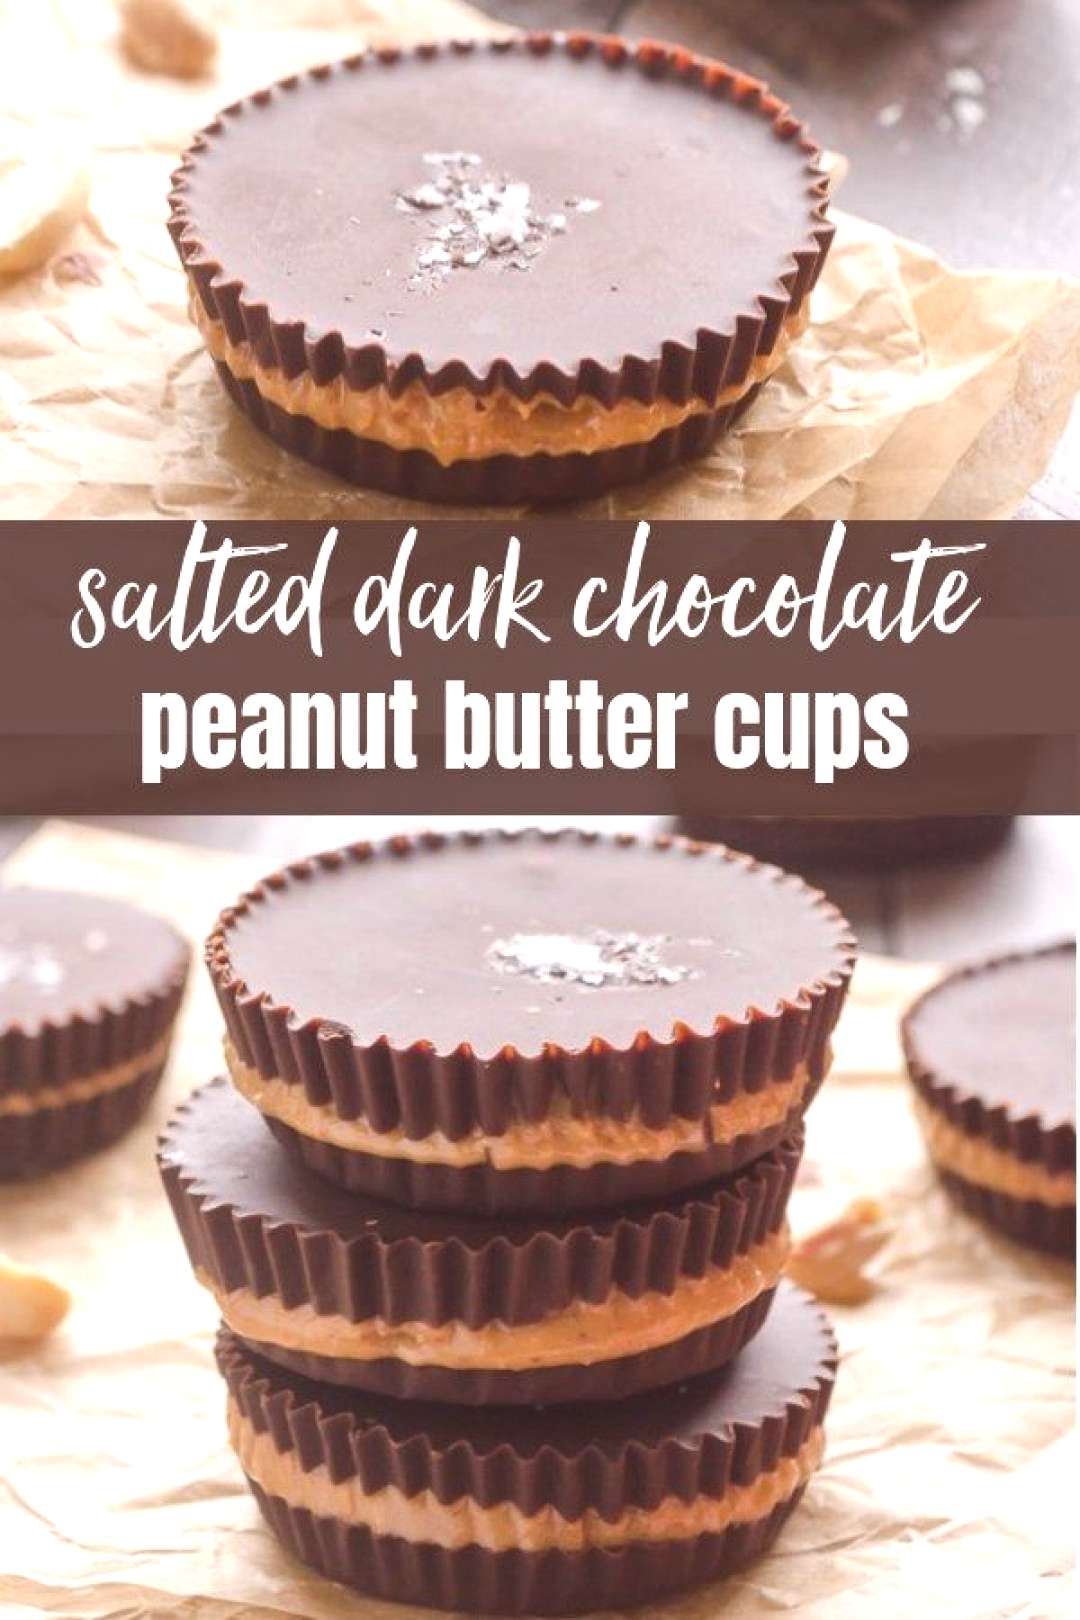 Salted Dark Chocolate Peanut Butter Cups are a healthier, homemade peanut butter cups with no added